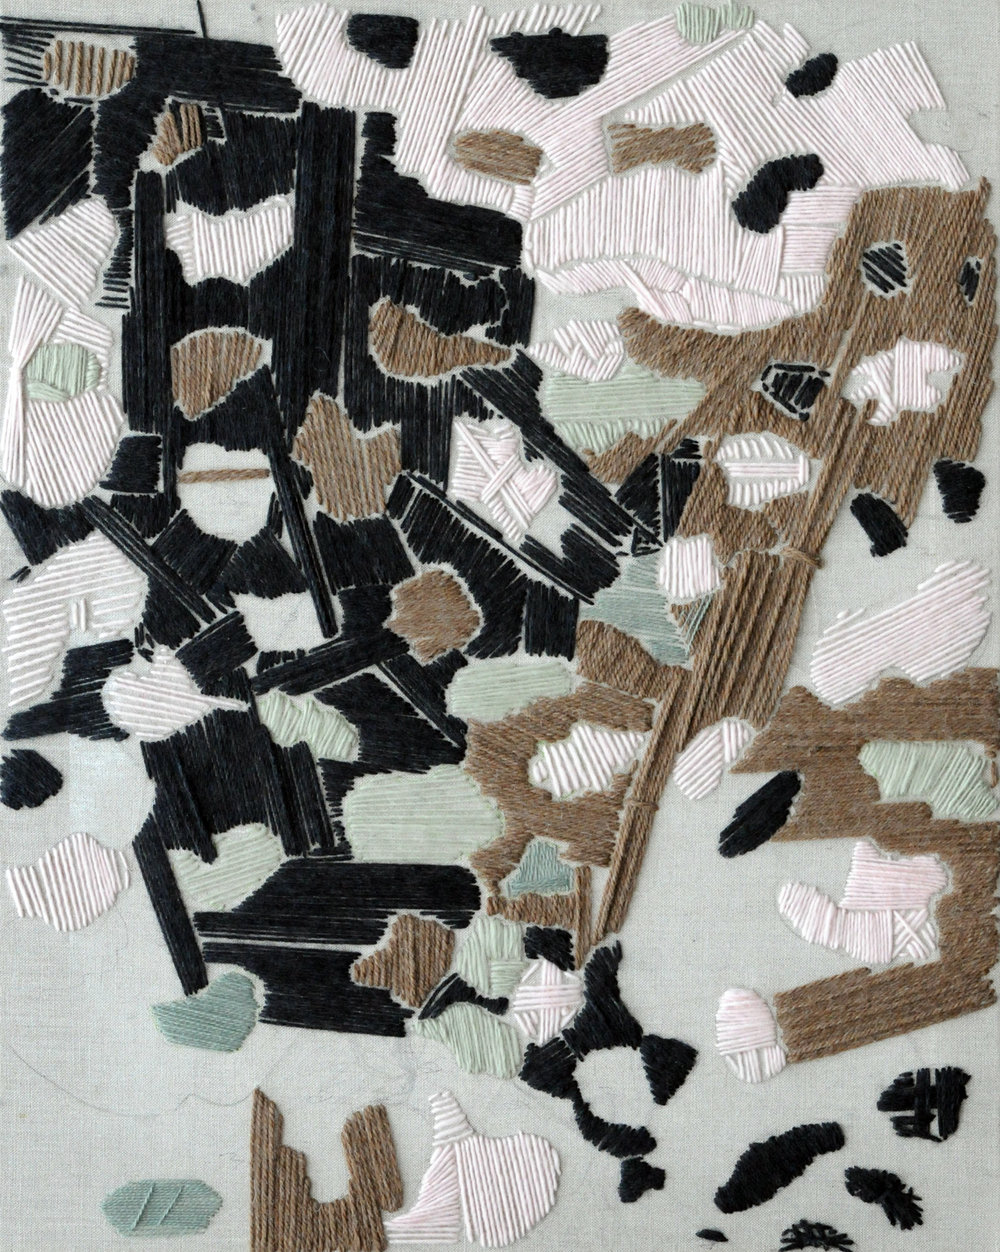 Matthew Varey Untitled 4 2012 Wool and Linen 30 x 24 inches.jpg